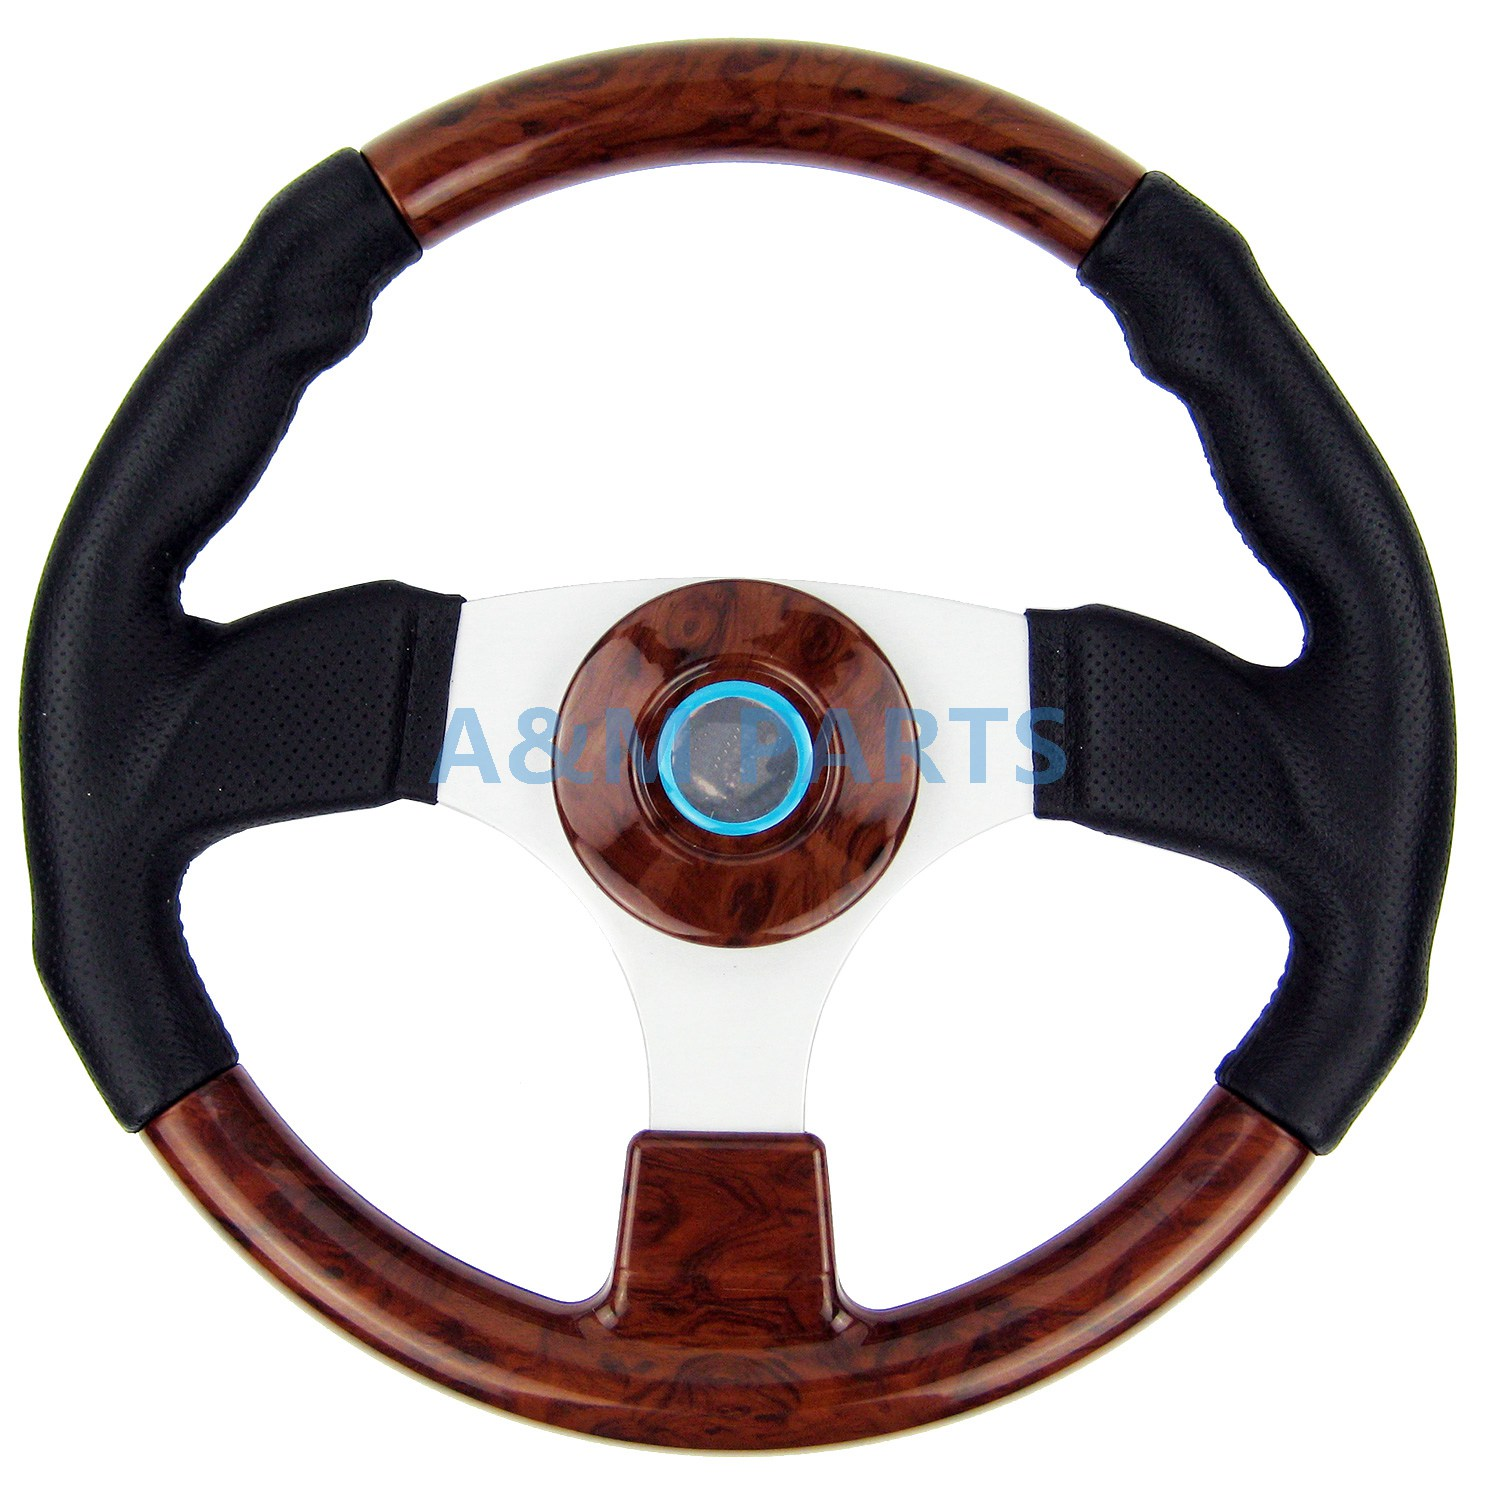 Marine Steering Wheel Burl Wood PU Cover Aluminum Spoke Pontoon Power Boat Steering 13.5 701697 001 fit for hp 15 15t 15 bseries laptop motherboard 701697 501 tested working